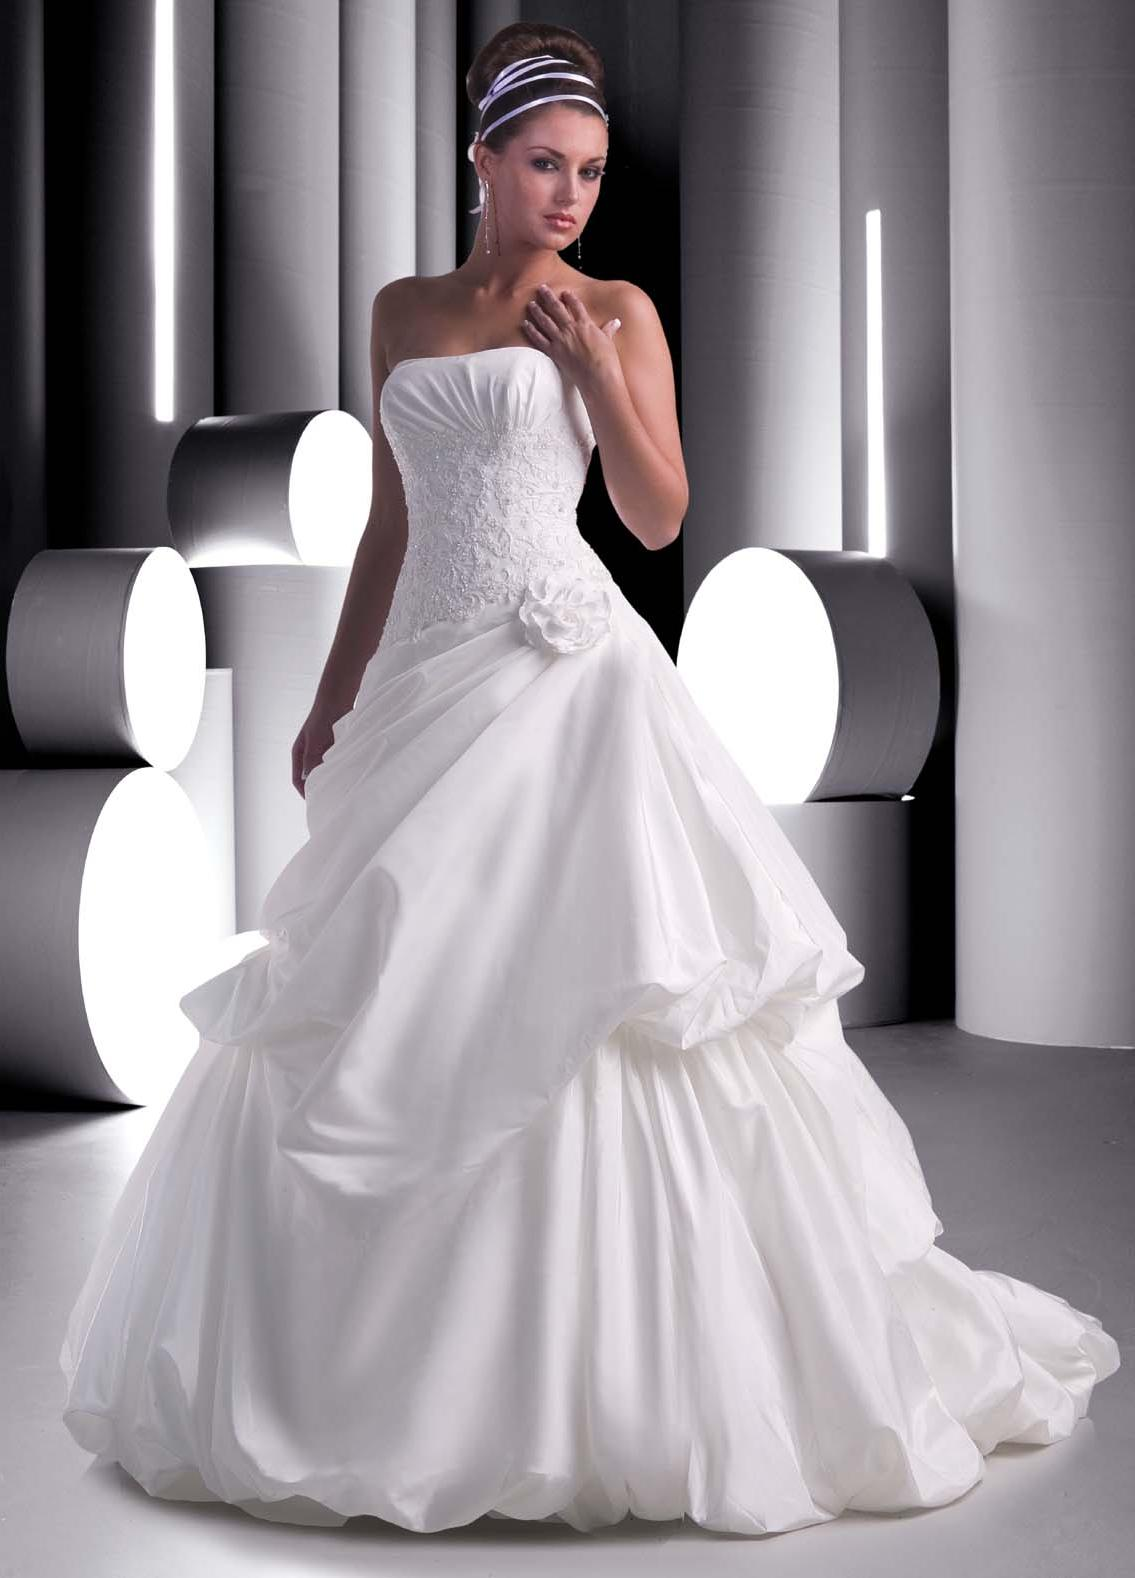 strapless bridal gown with